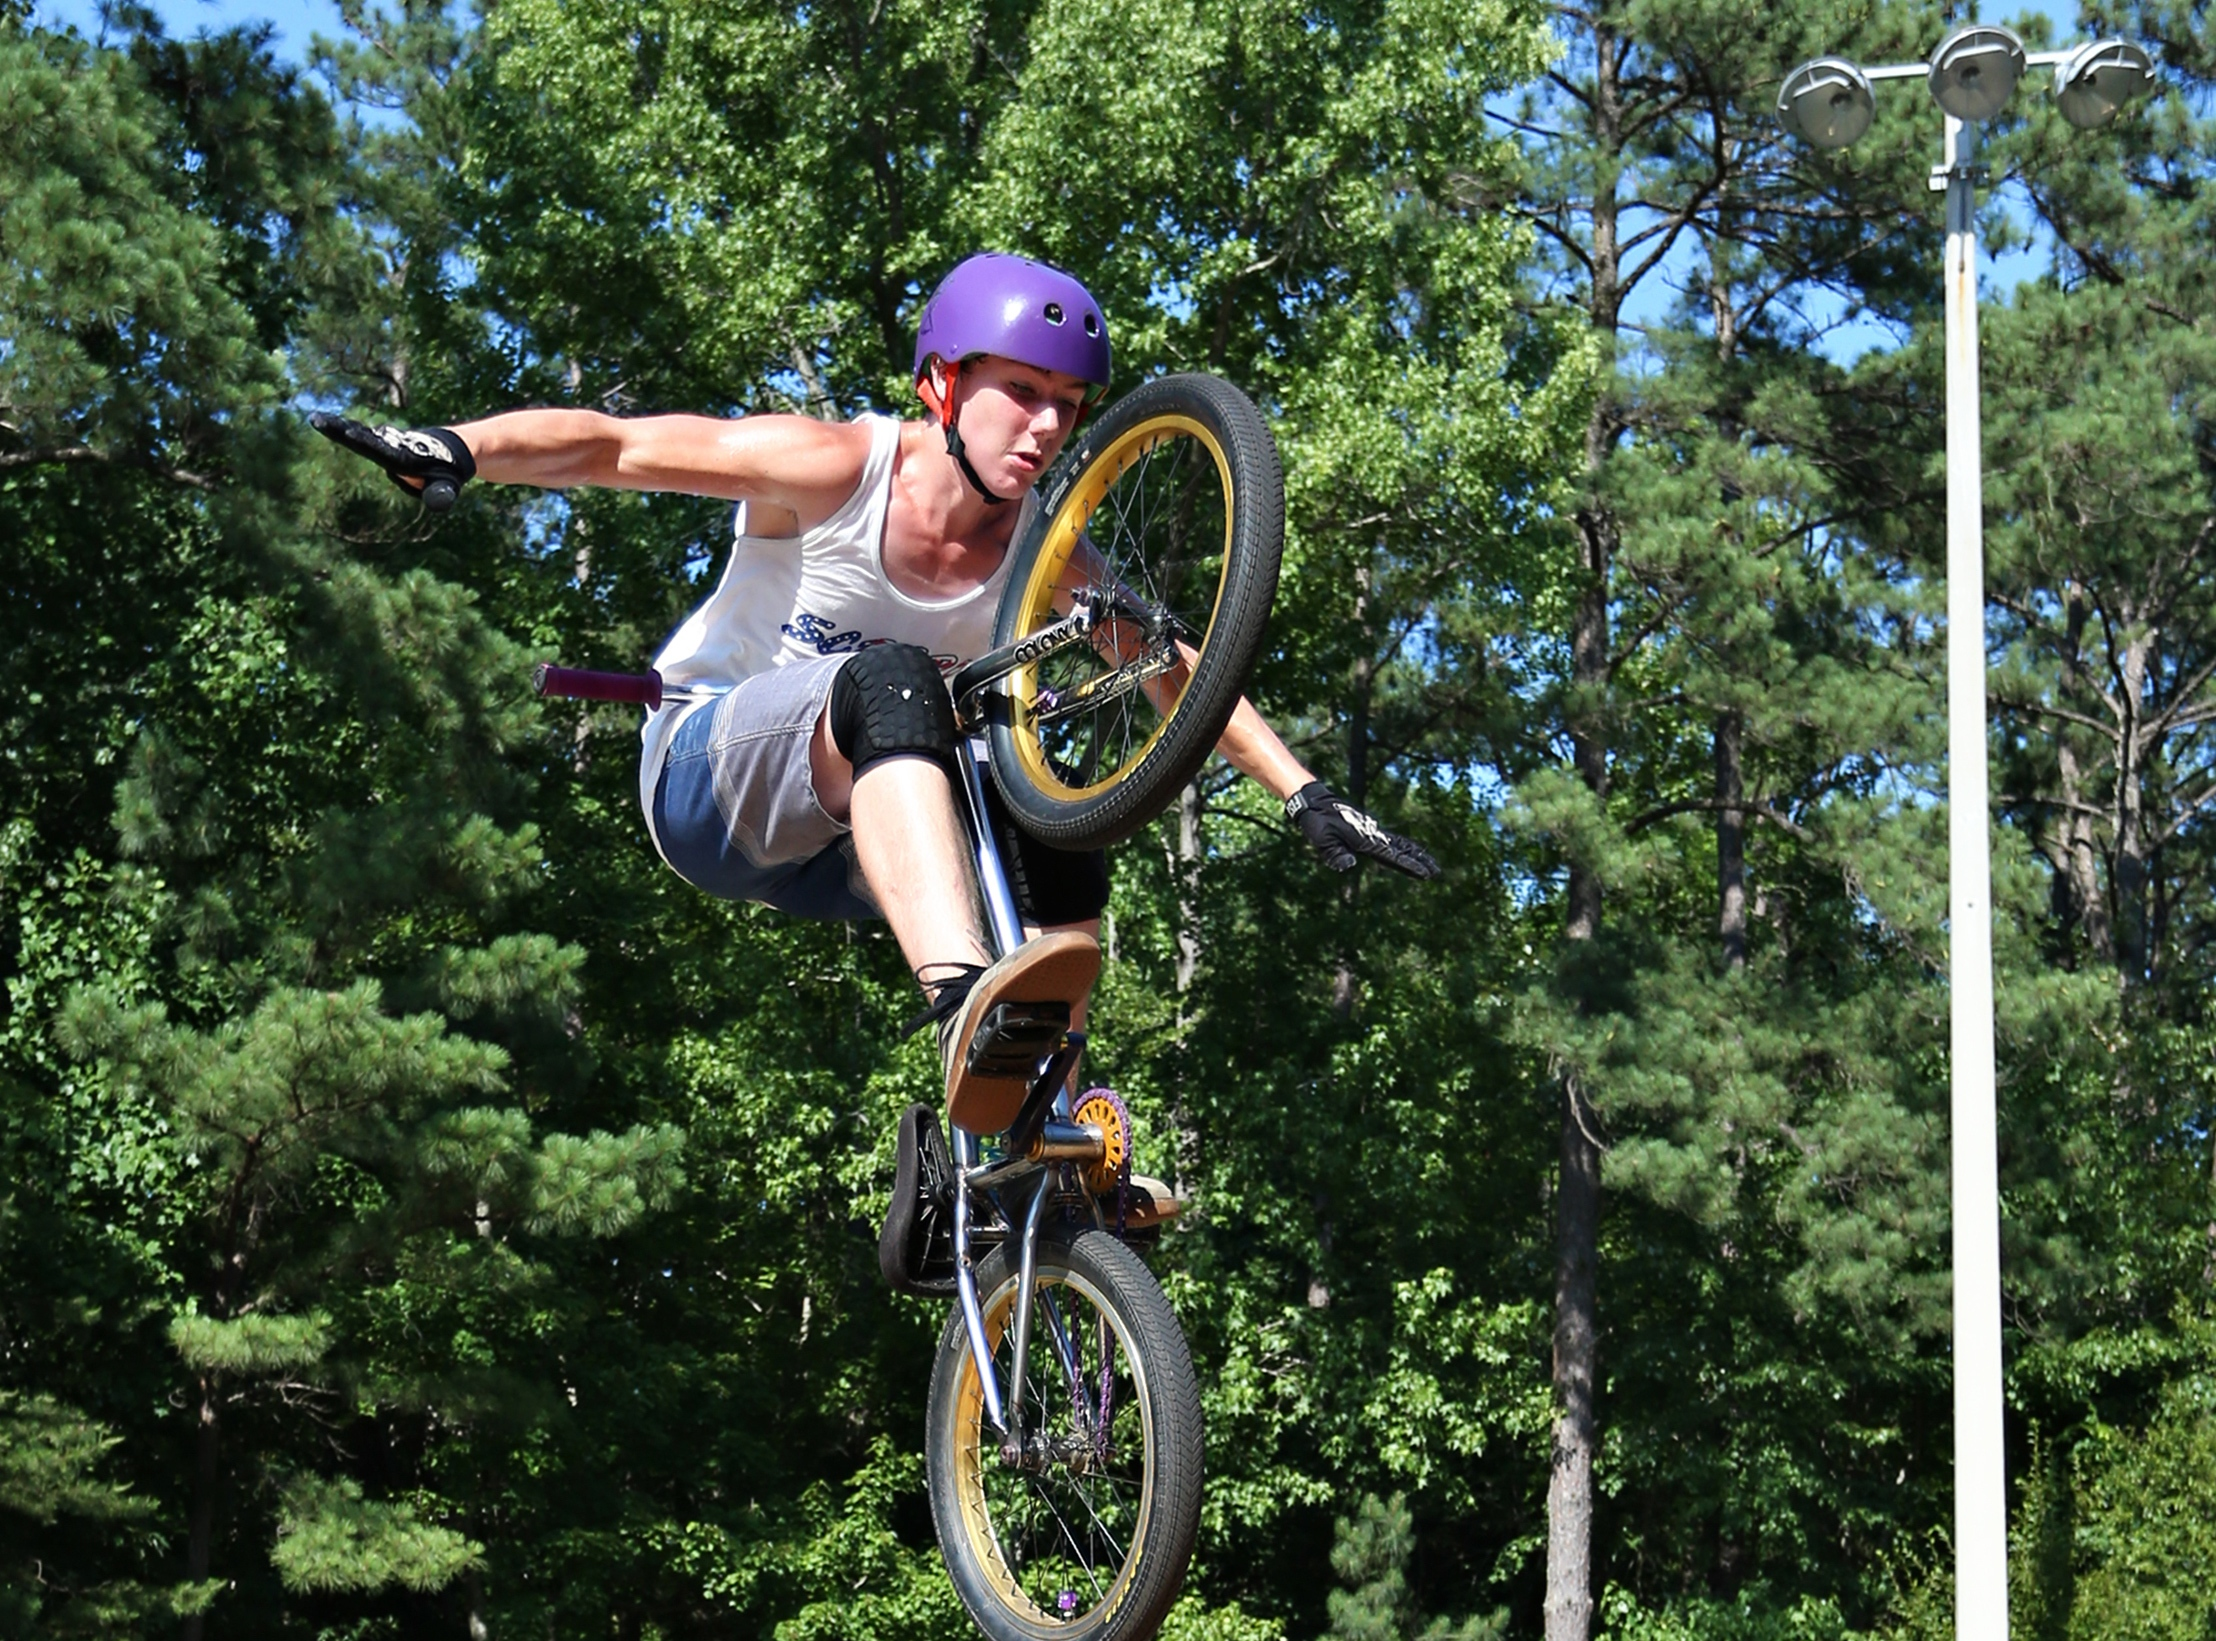 Photo of a woman riding a BMX at a skate park in Cary, NC.